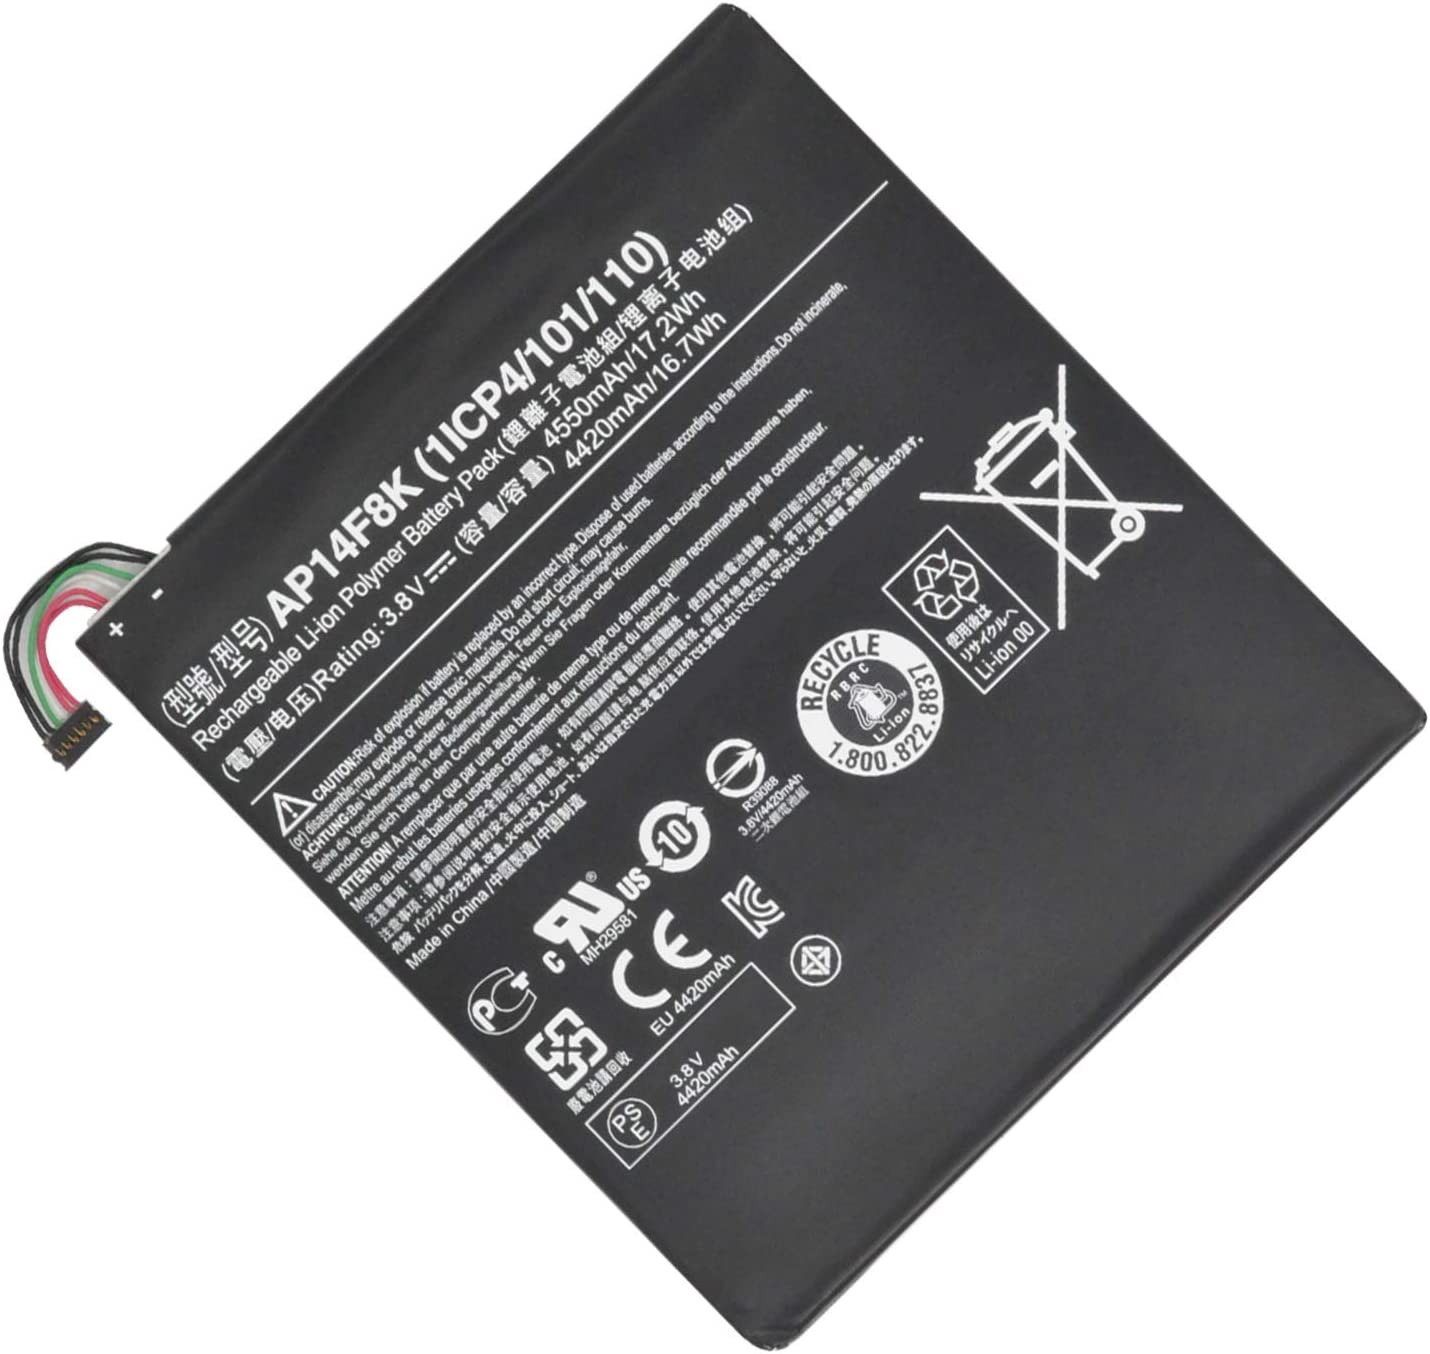 Hubei AP14F8K 1ICP4/101/110 Replacement Laptop Battery for Battery Acer Iconia Tab A1-850 B1-810 B1-820 W1-810 Series (3.8V 17.2Wh)